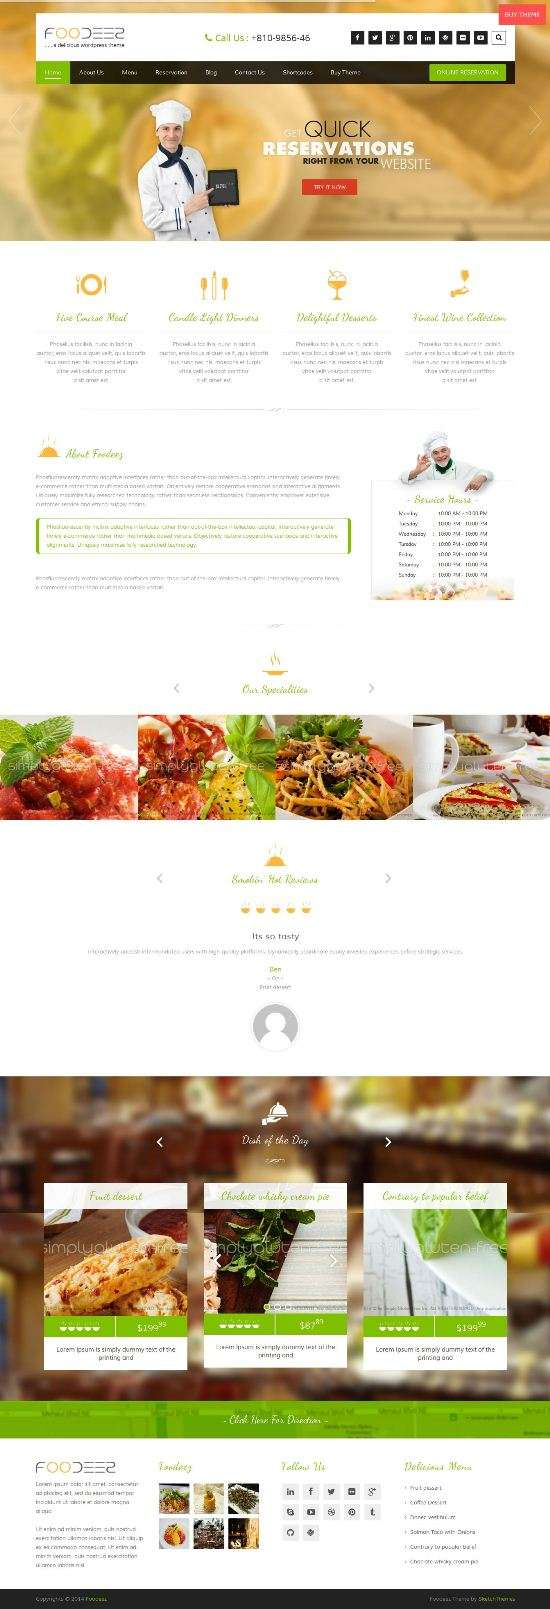 foodeez restaurant sketch themes 01 - Foodeez WordPress Theme